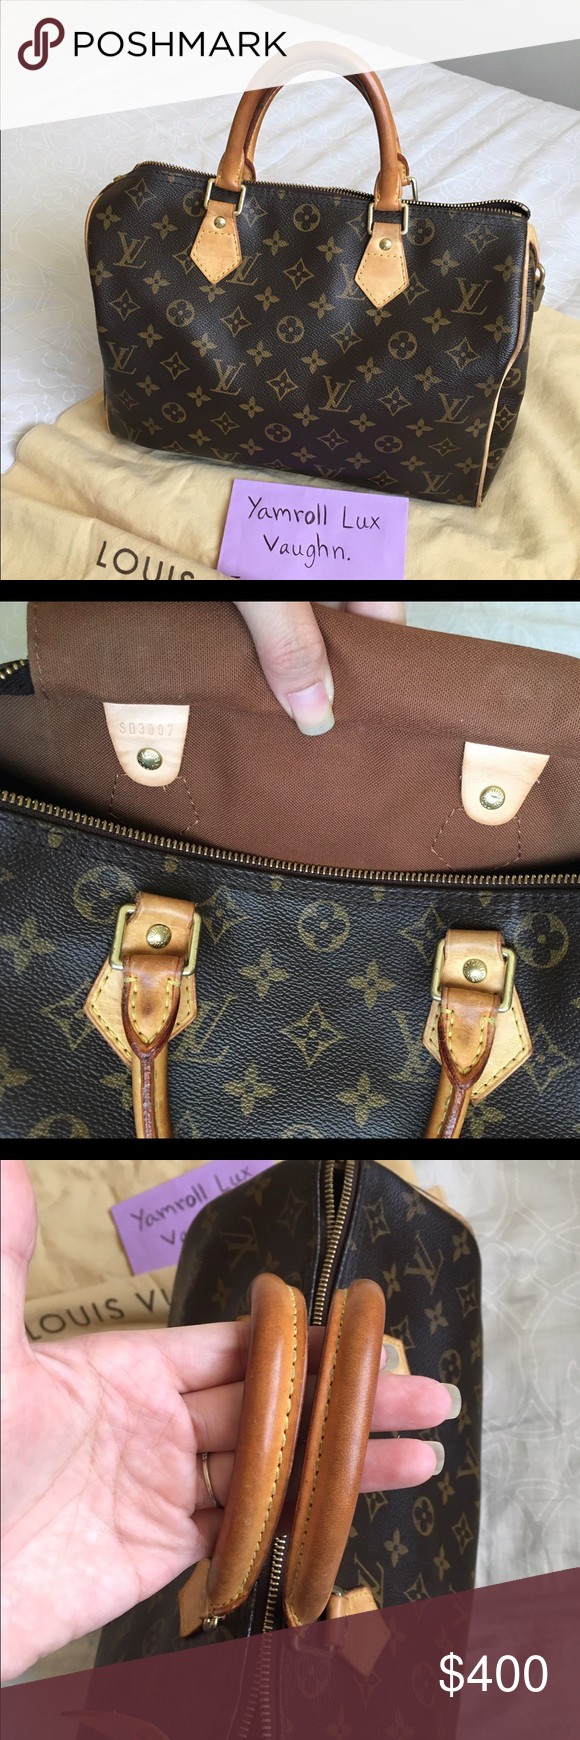 ❌SOLD❌ Authentic Lv Speedy 30 Overall is very good condition. Has some scuff on the pipeline and two small exposed on the corners but it can be fixed at Lv or using as is. Handles are pretty honey patina. Canvas is very shiny. Clean inside and out. No cracks or rips. Comes with dust bag and lock. No keys. 100% authentic guarantee. Louis Vuitton Bags Satchels